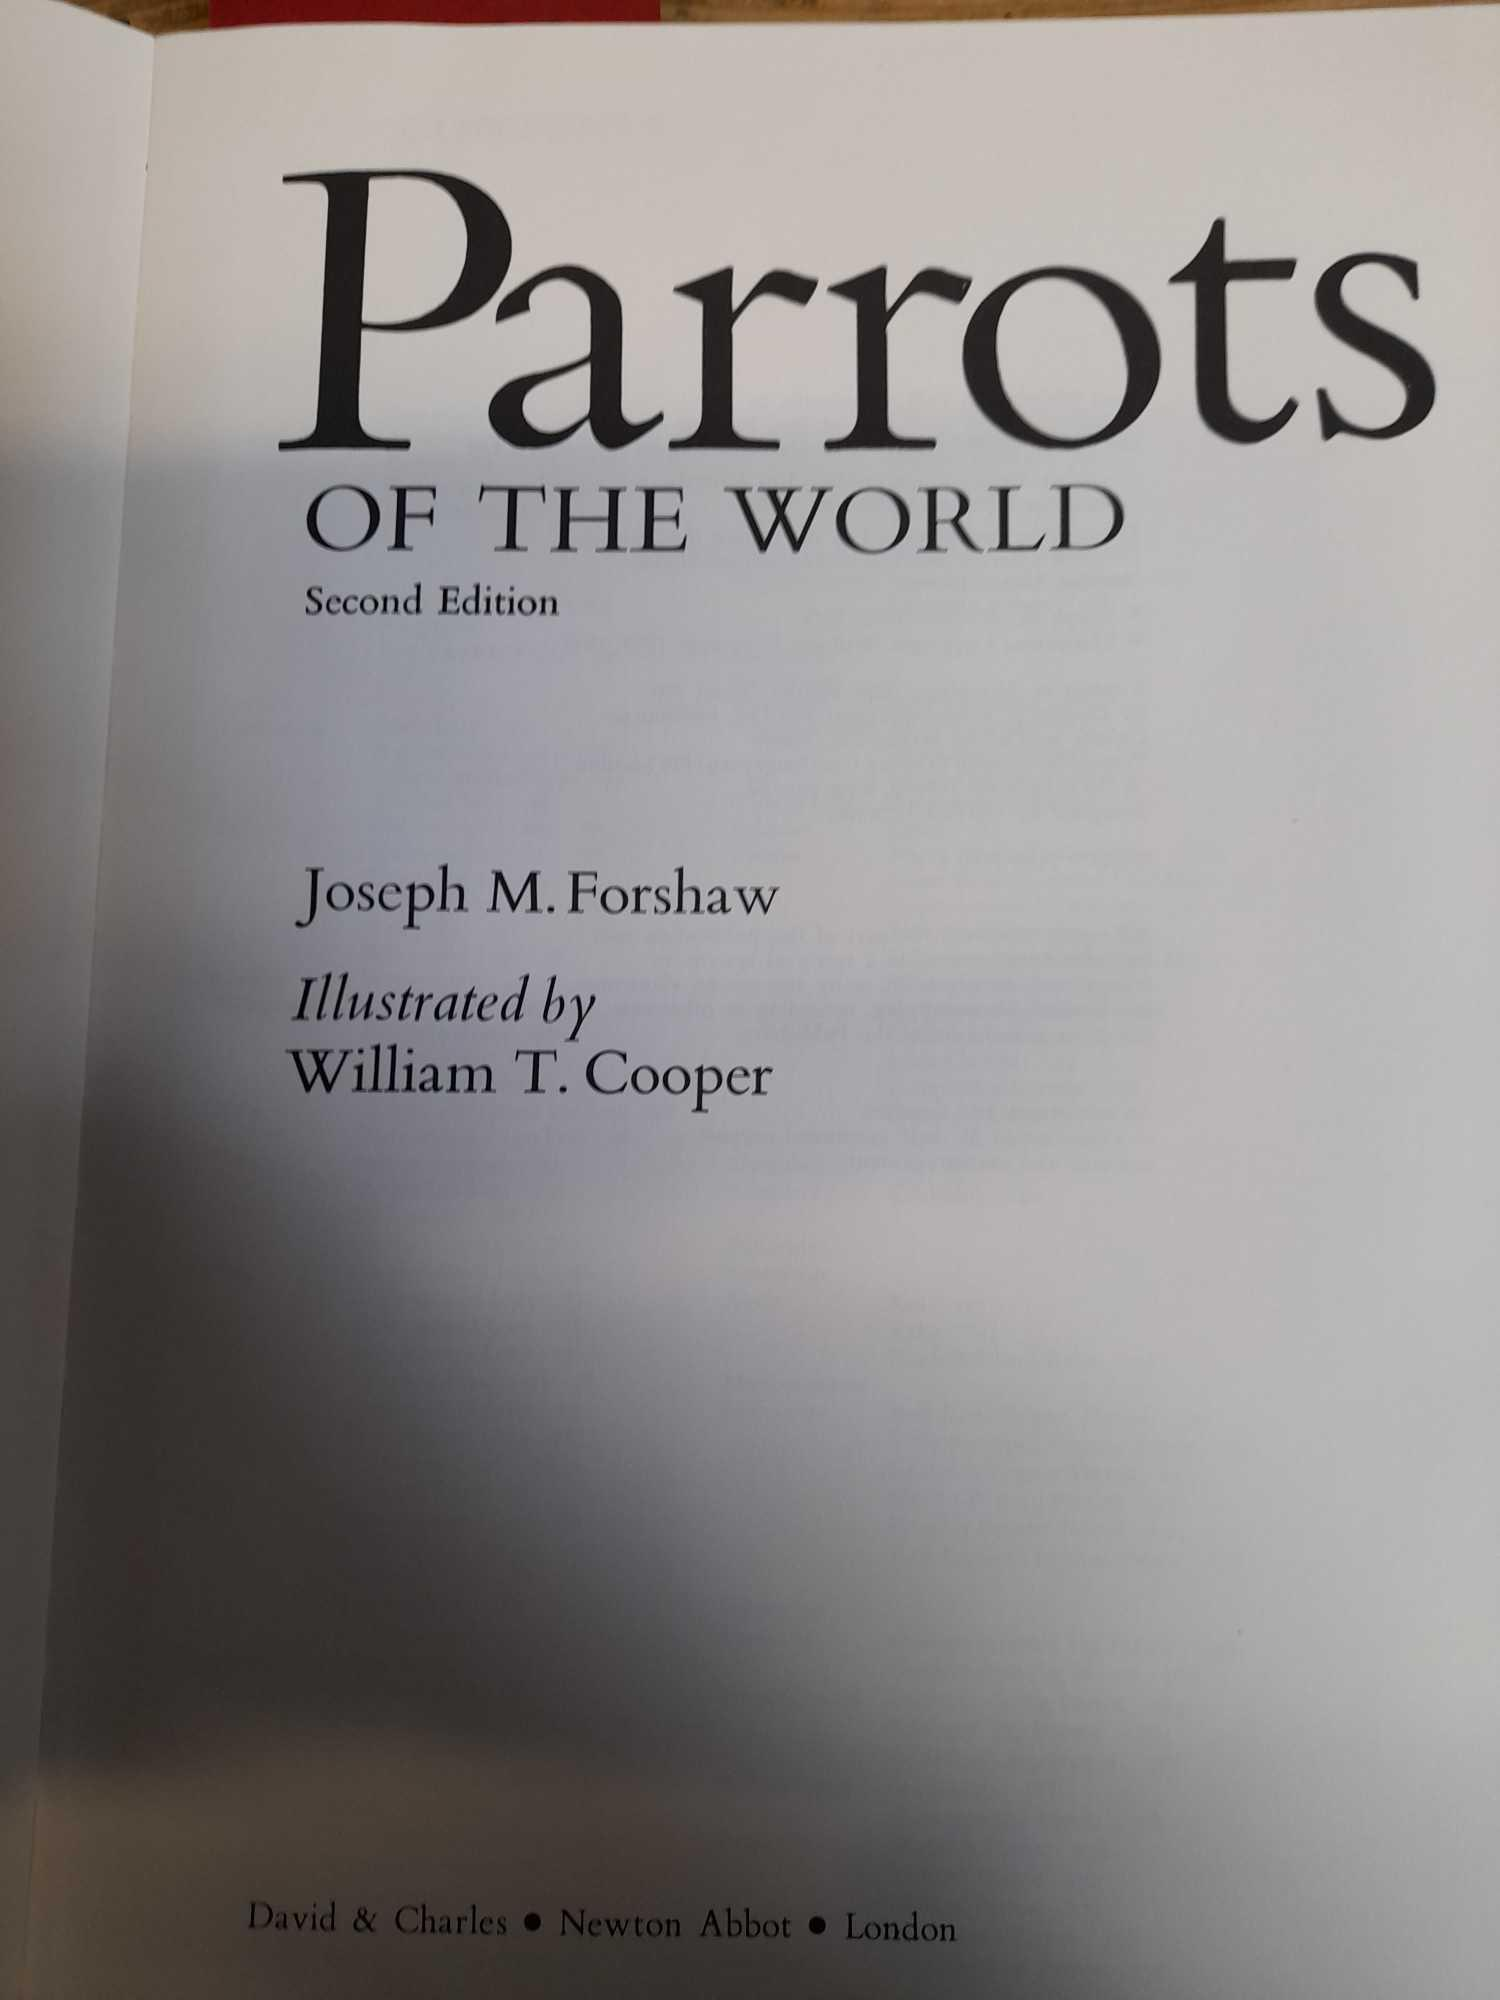 3 PARROT BOOKS - Image 9 of 20